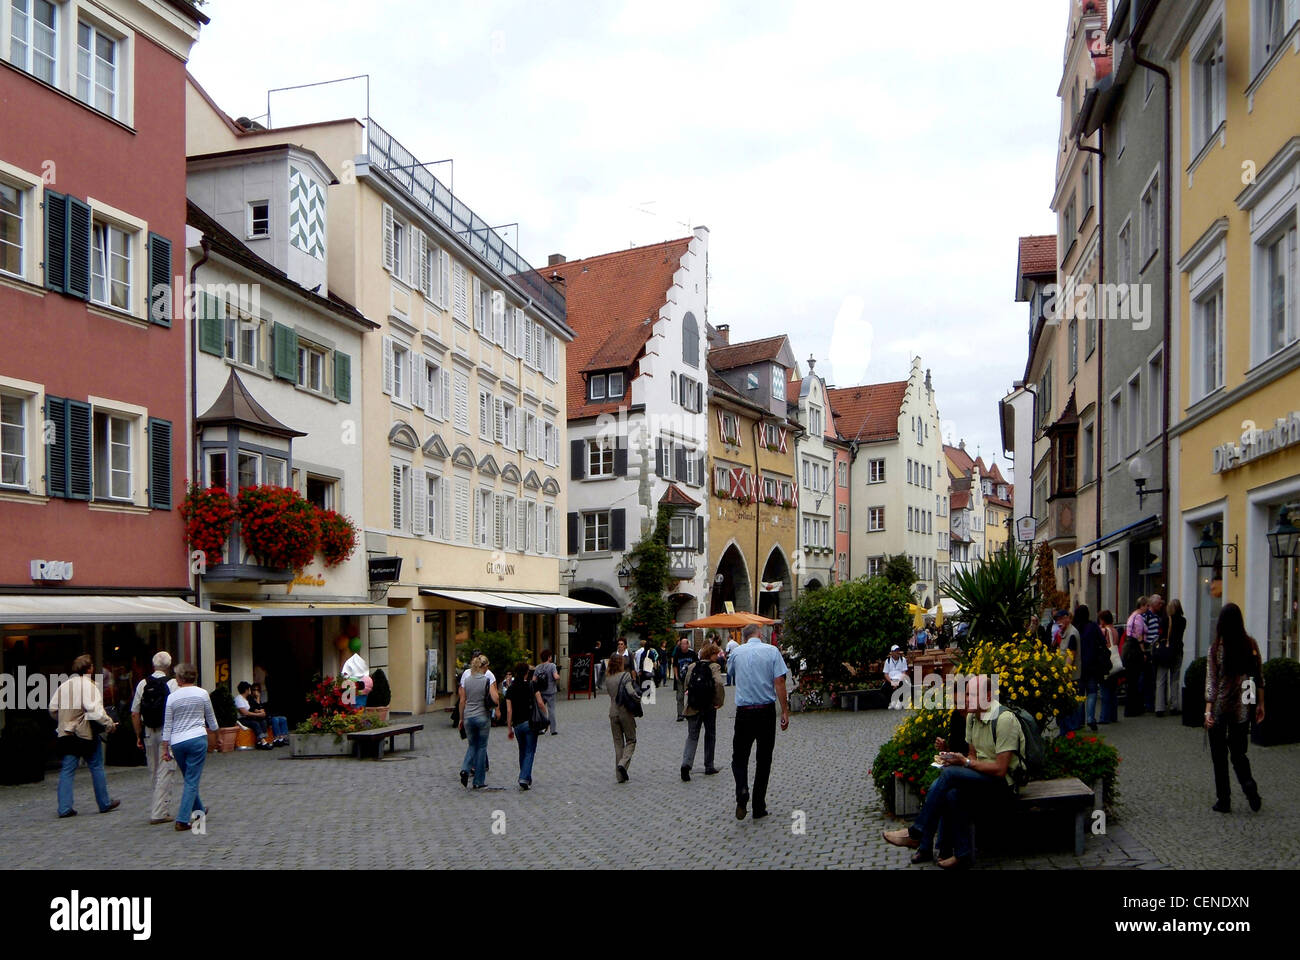 Old town of Lindau in Lake Constance. Stock Photo